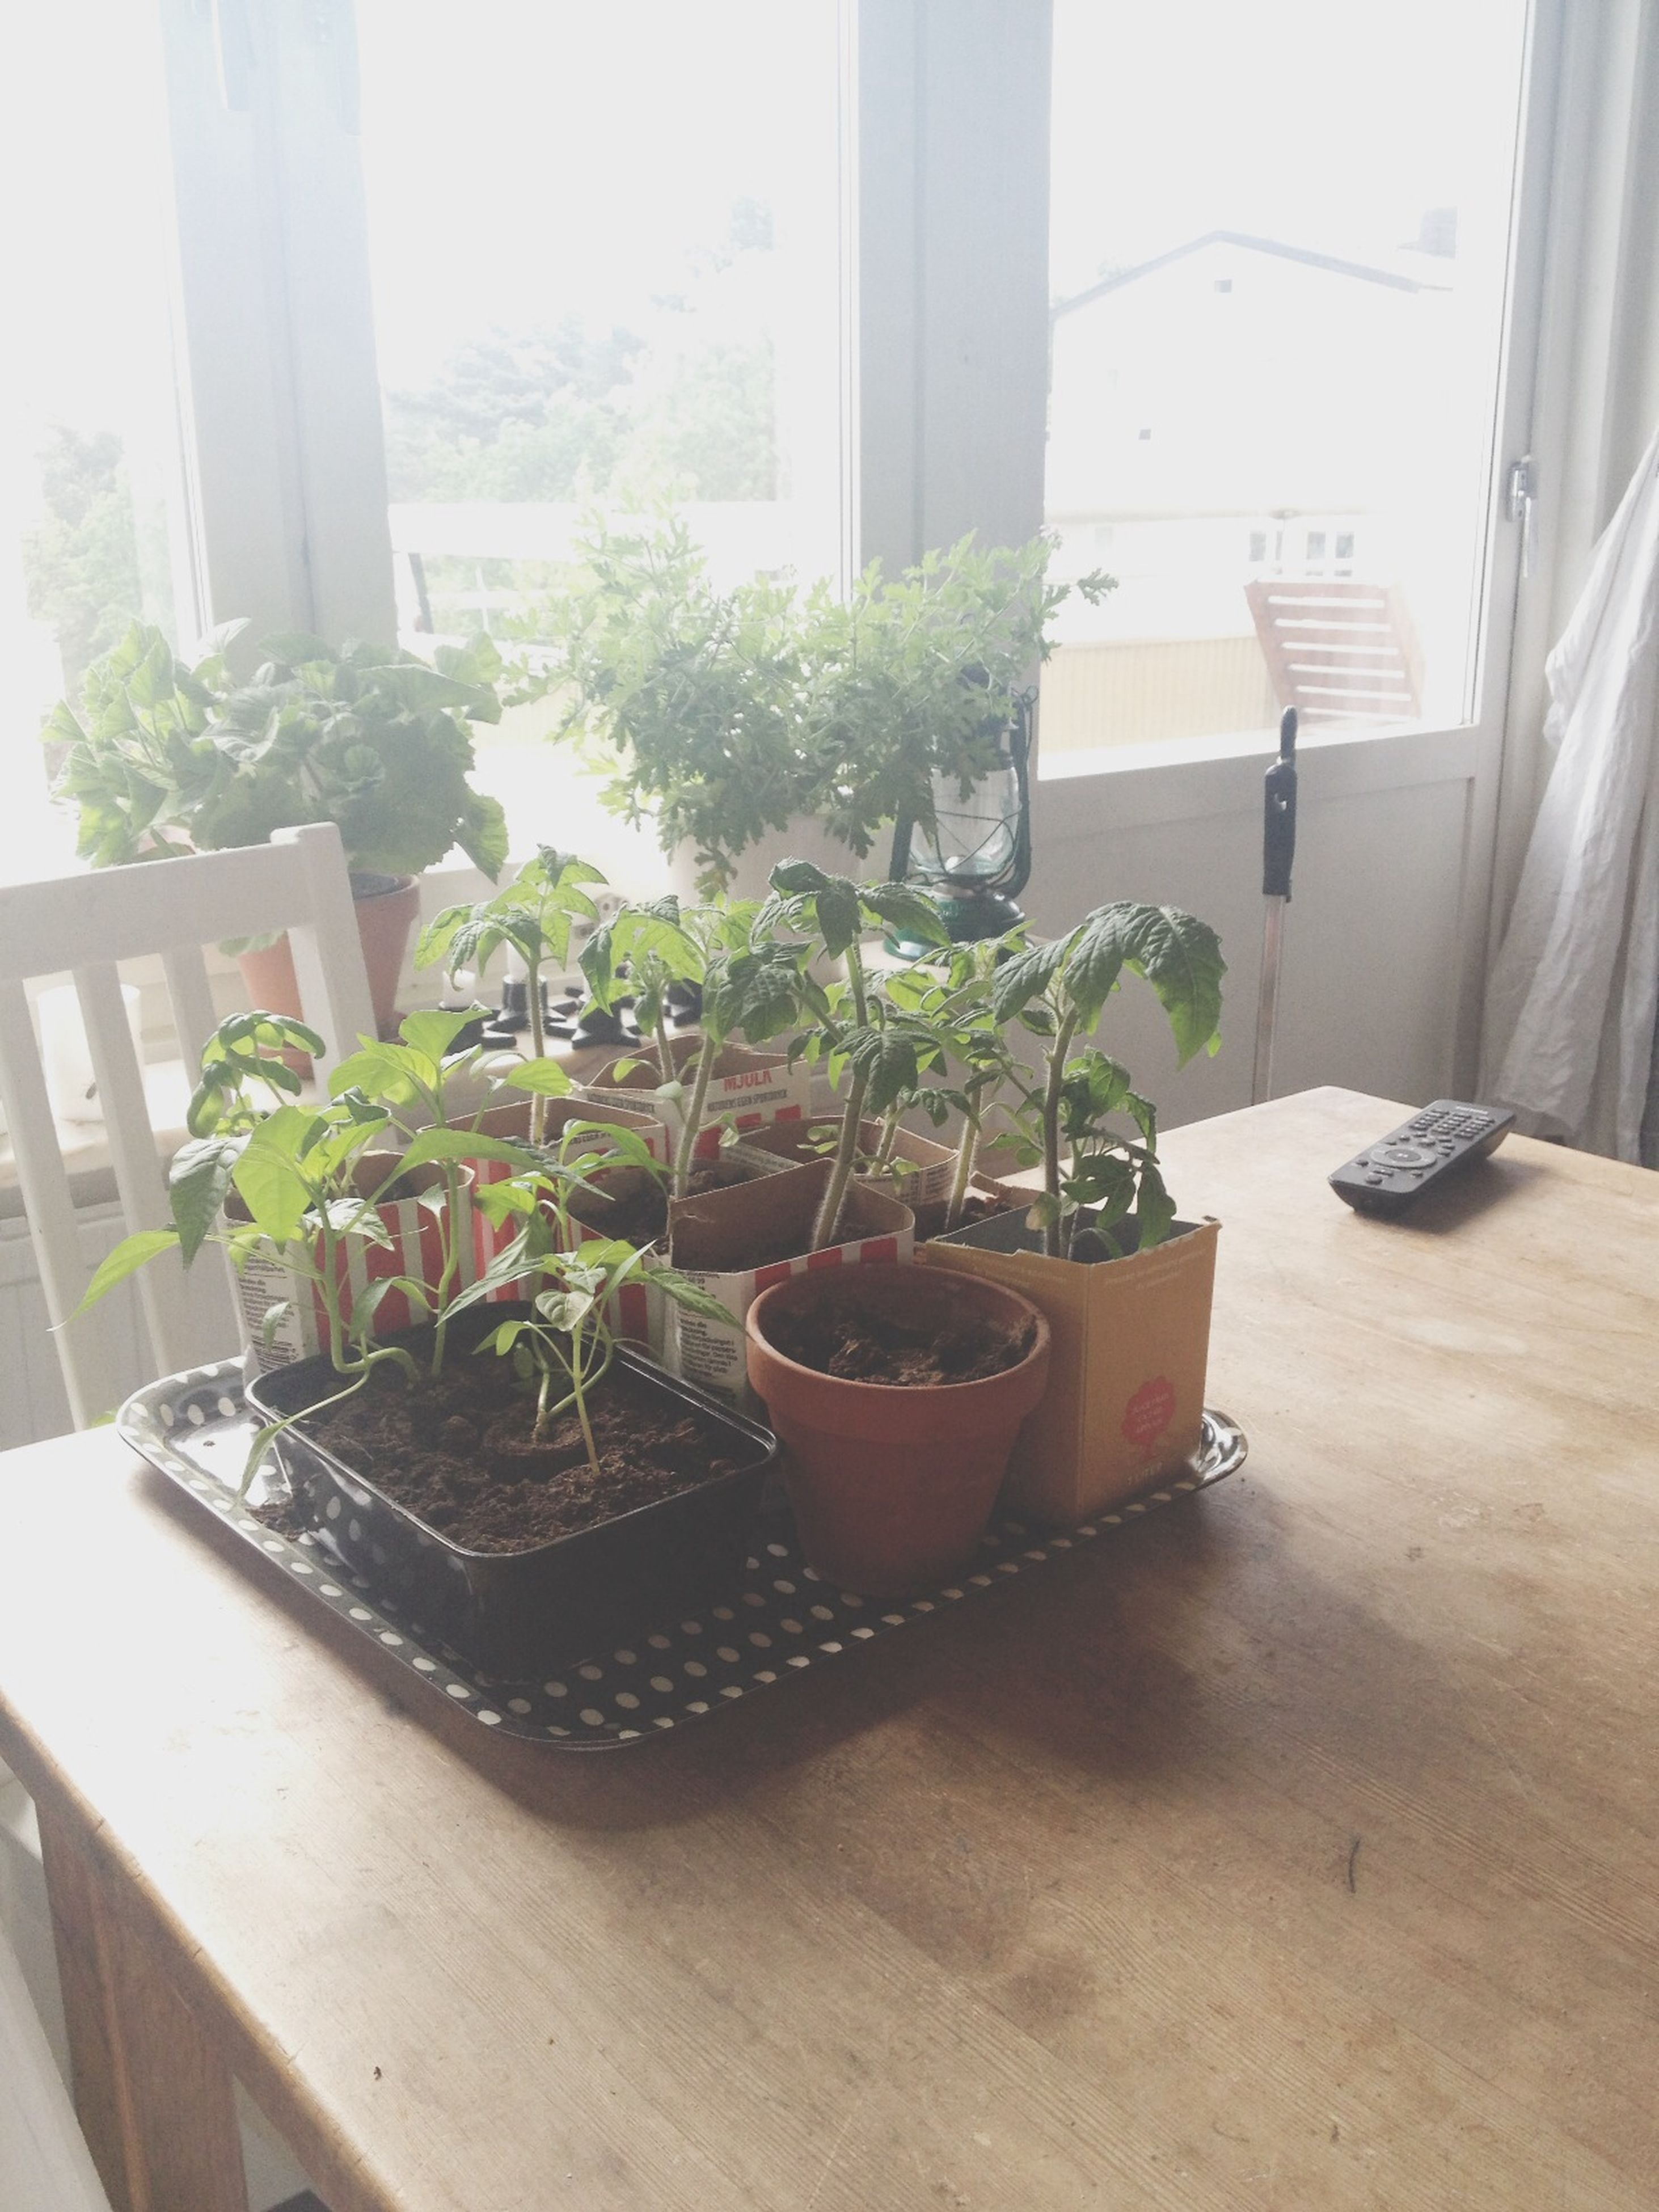 indoors, potted plant, table, plant, window, growth, home interior, chair, house, leaf, vase, flower pot, glass - material, pot plant, window sill, built structure, architecture, houseplant, day, sunlight